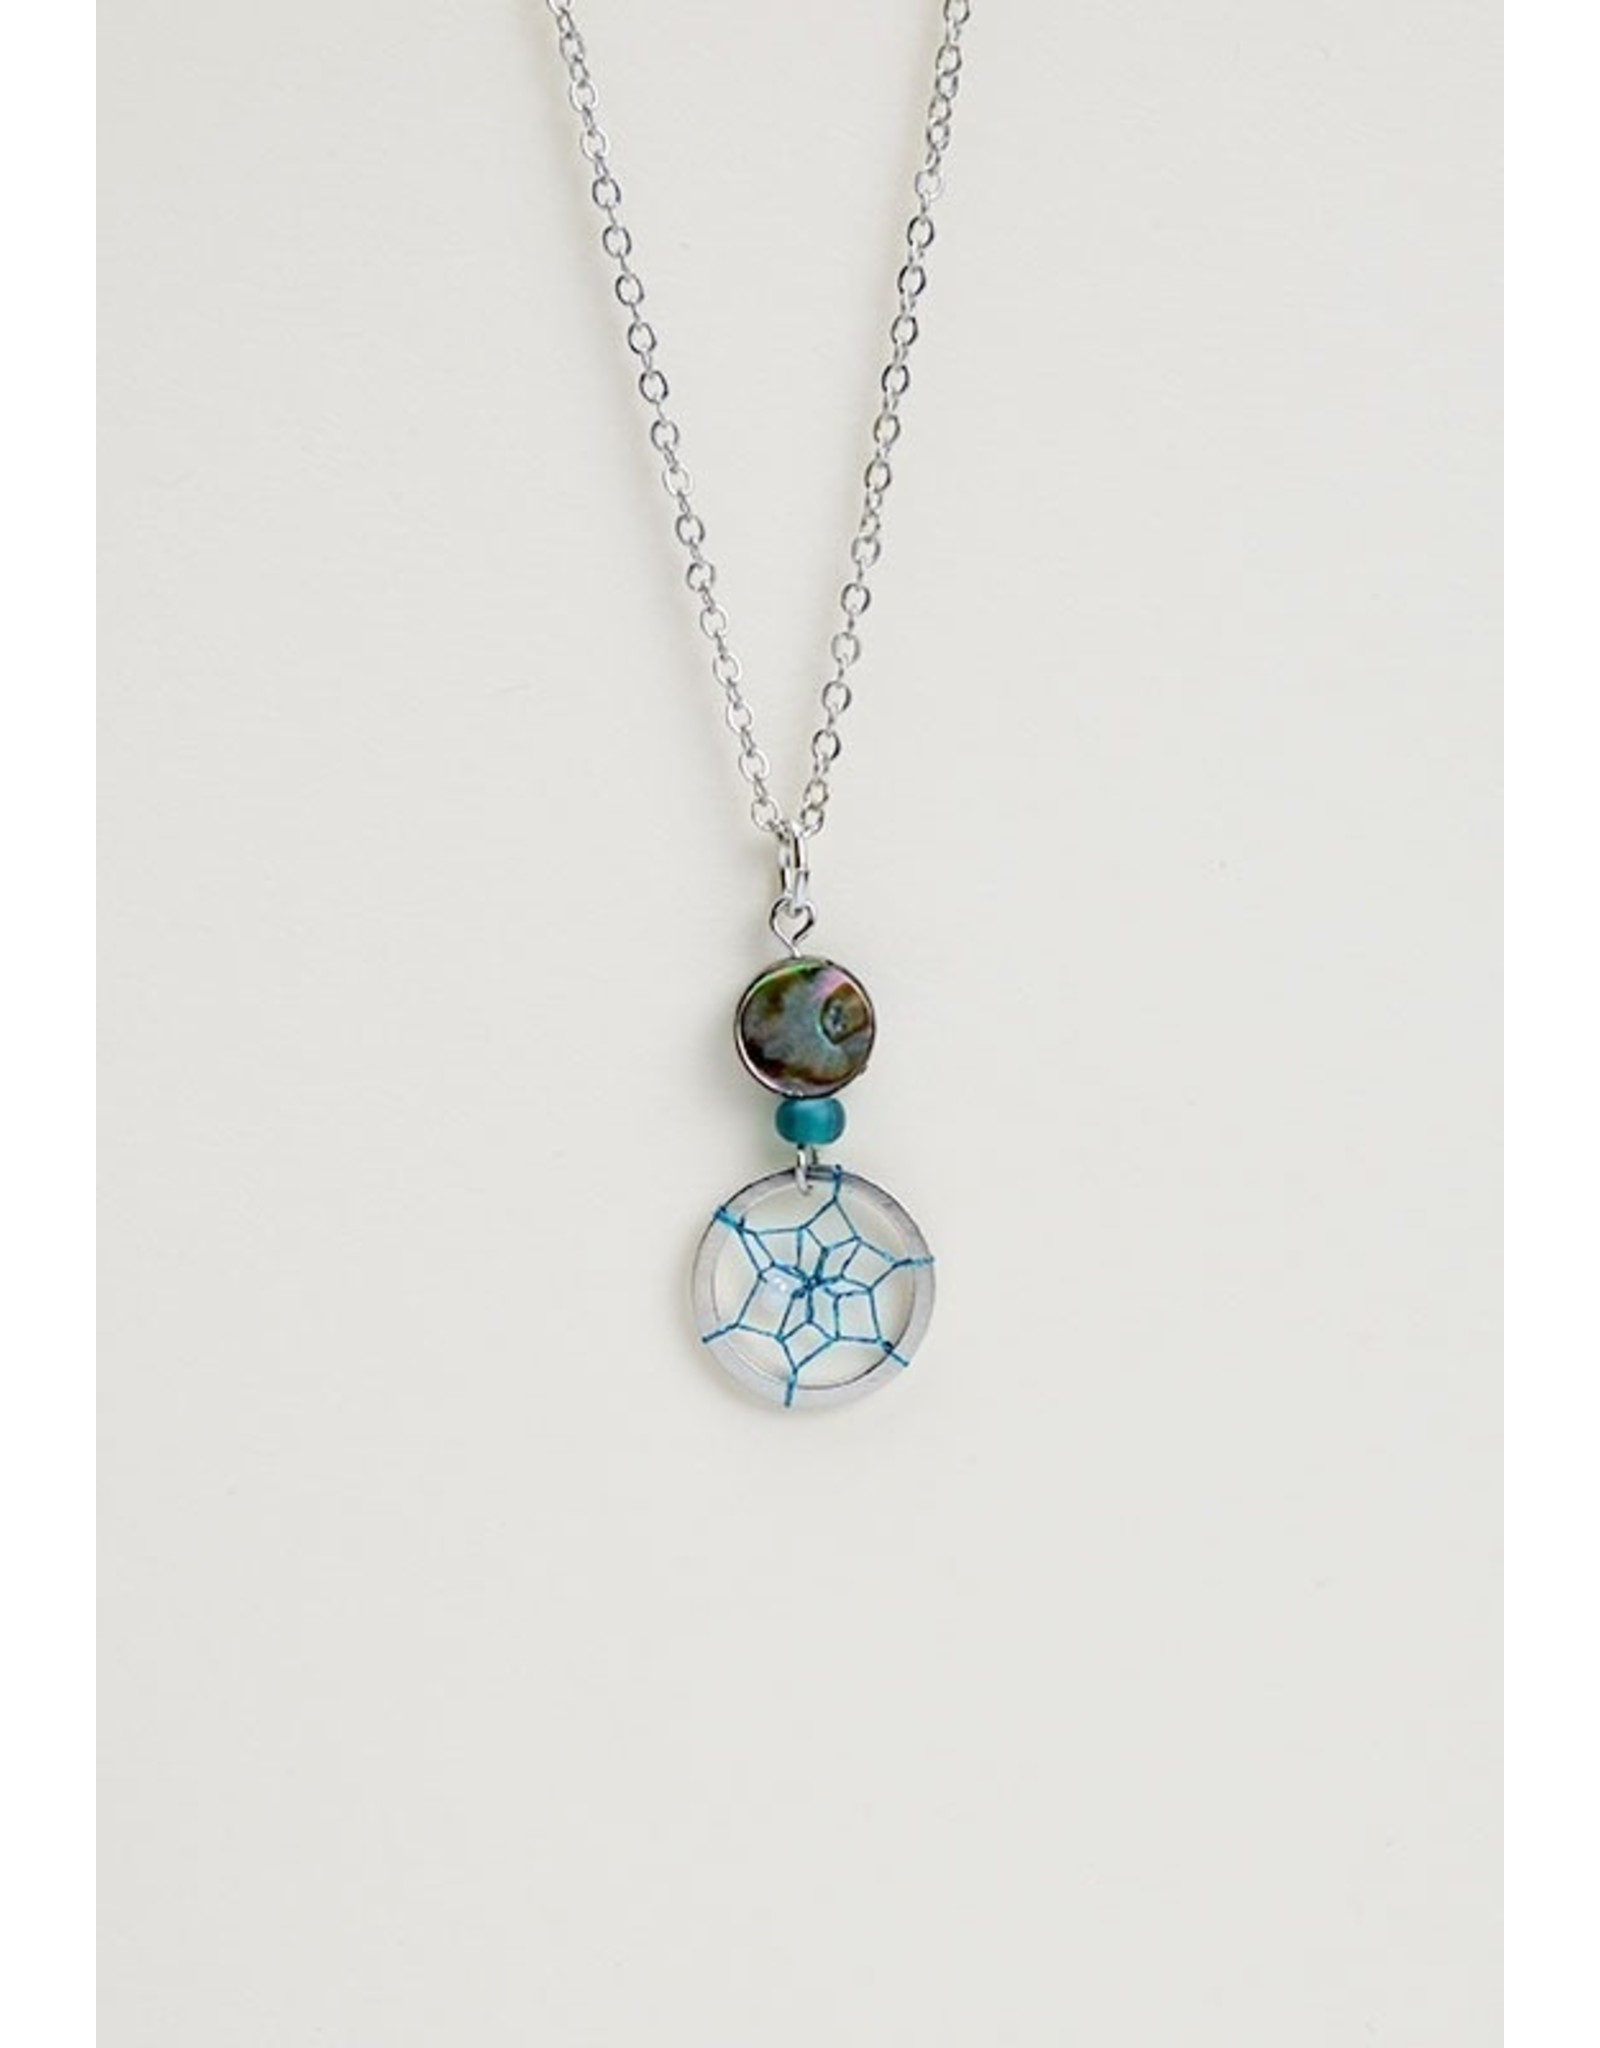 Paua Shell and Dream Catcher Necklace  - DC1416-P